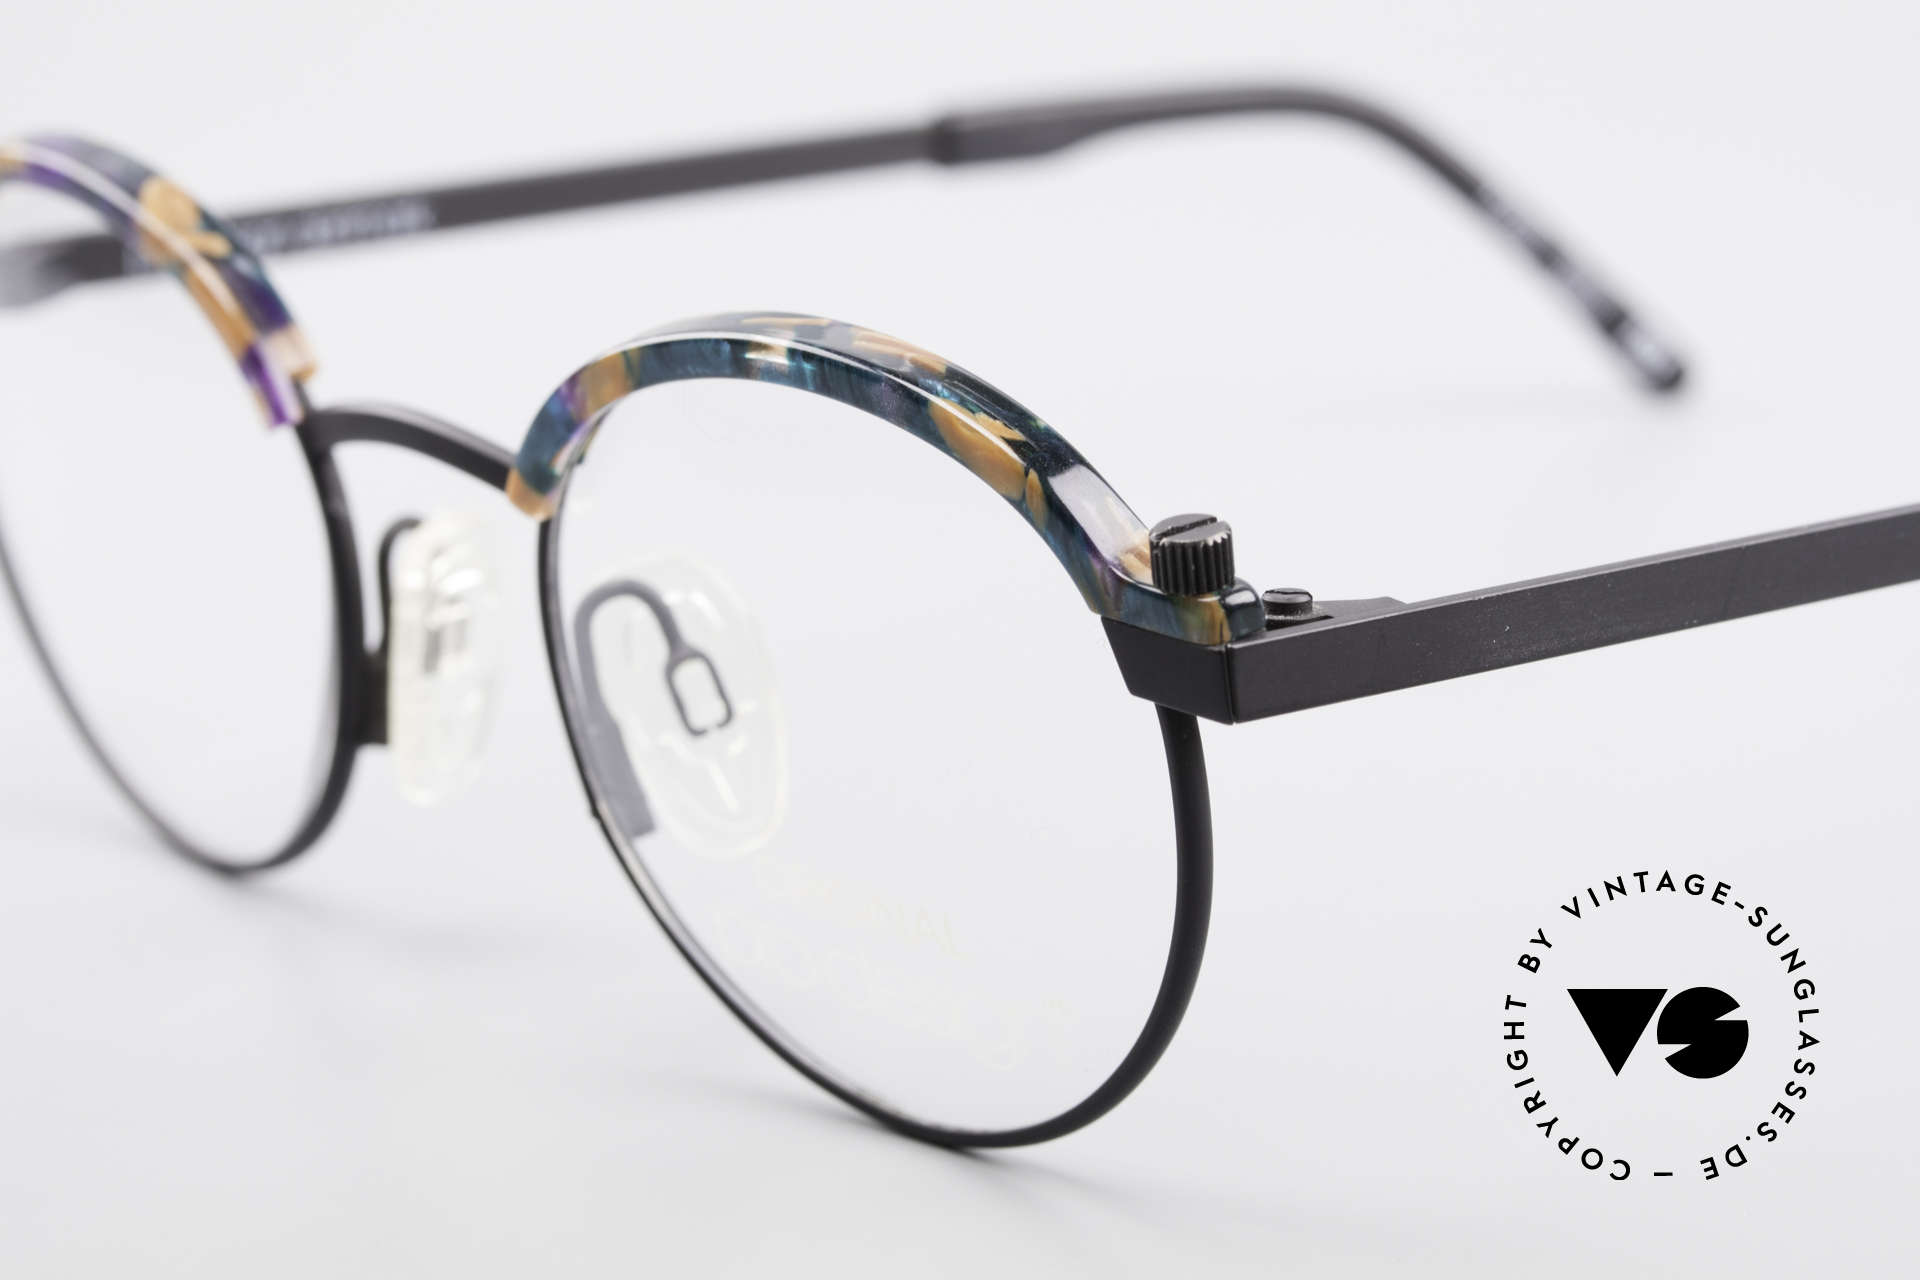 ProDesign Proswitch 4 Round Vintage Panto Glasses, timeless elegant combination of colors & pattern, Made for Men and Women